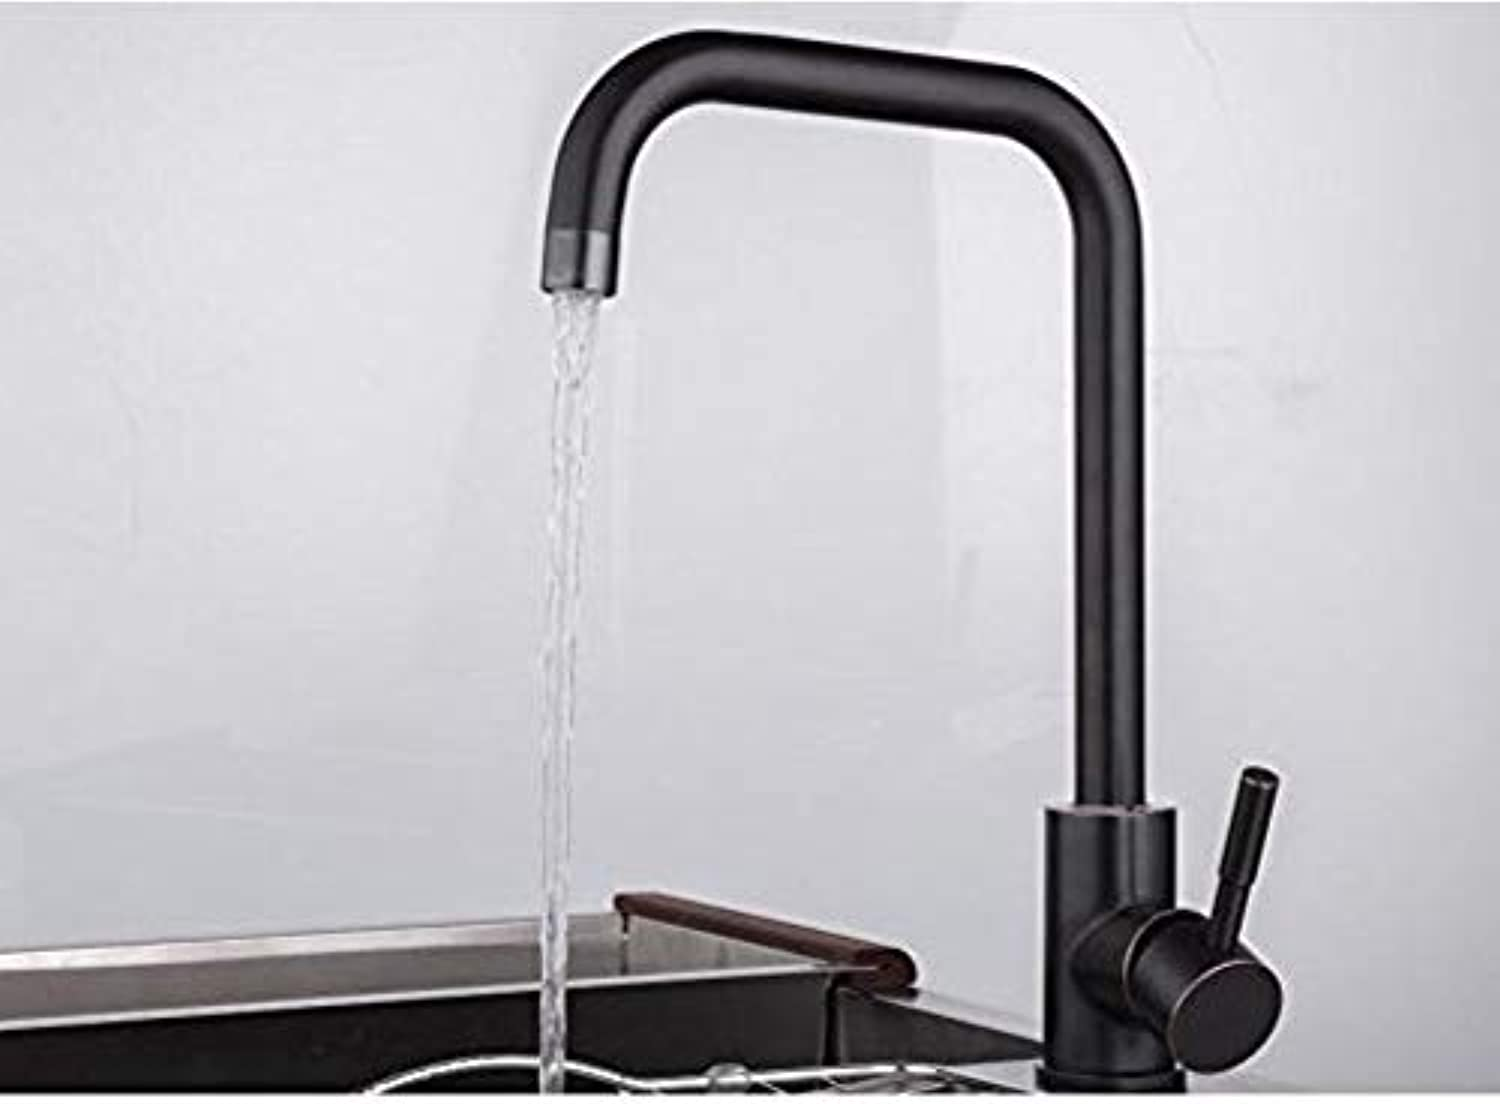 360° redating Faucet Retro Faucet Kitchen Sink Taps Single Handle1Stainless Steel Sink Faucet